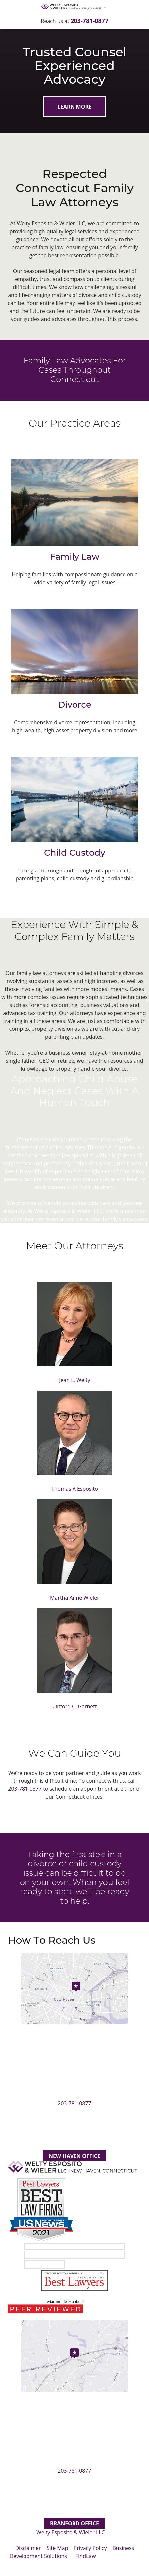 Welty Esposito & Wieler LLC Law Offices - New Haven CT Lawyers